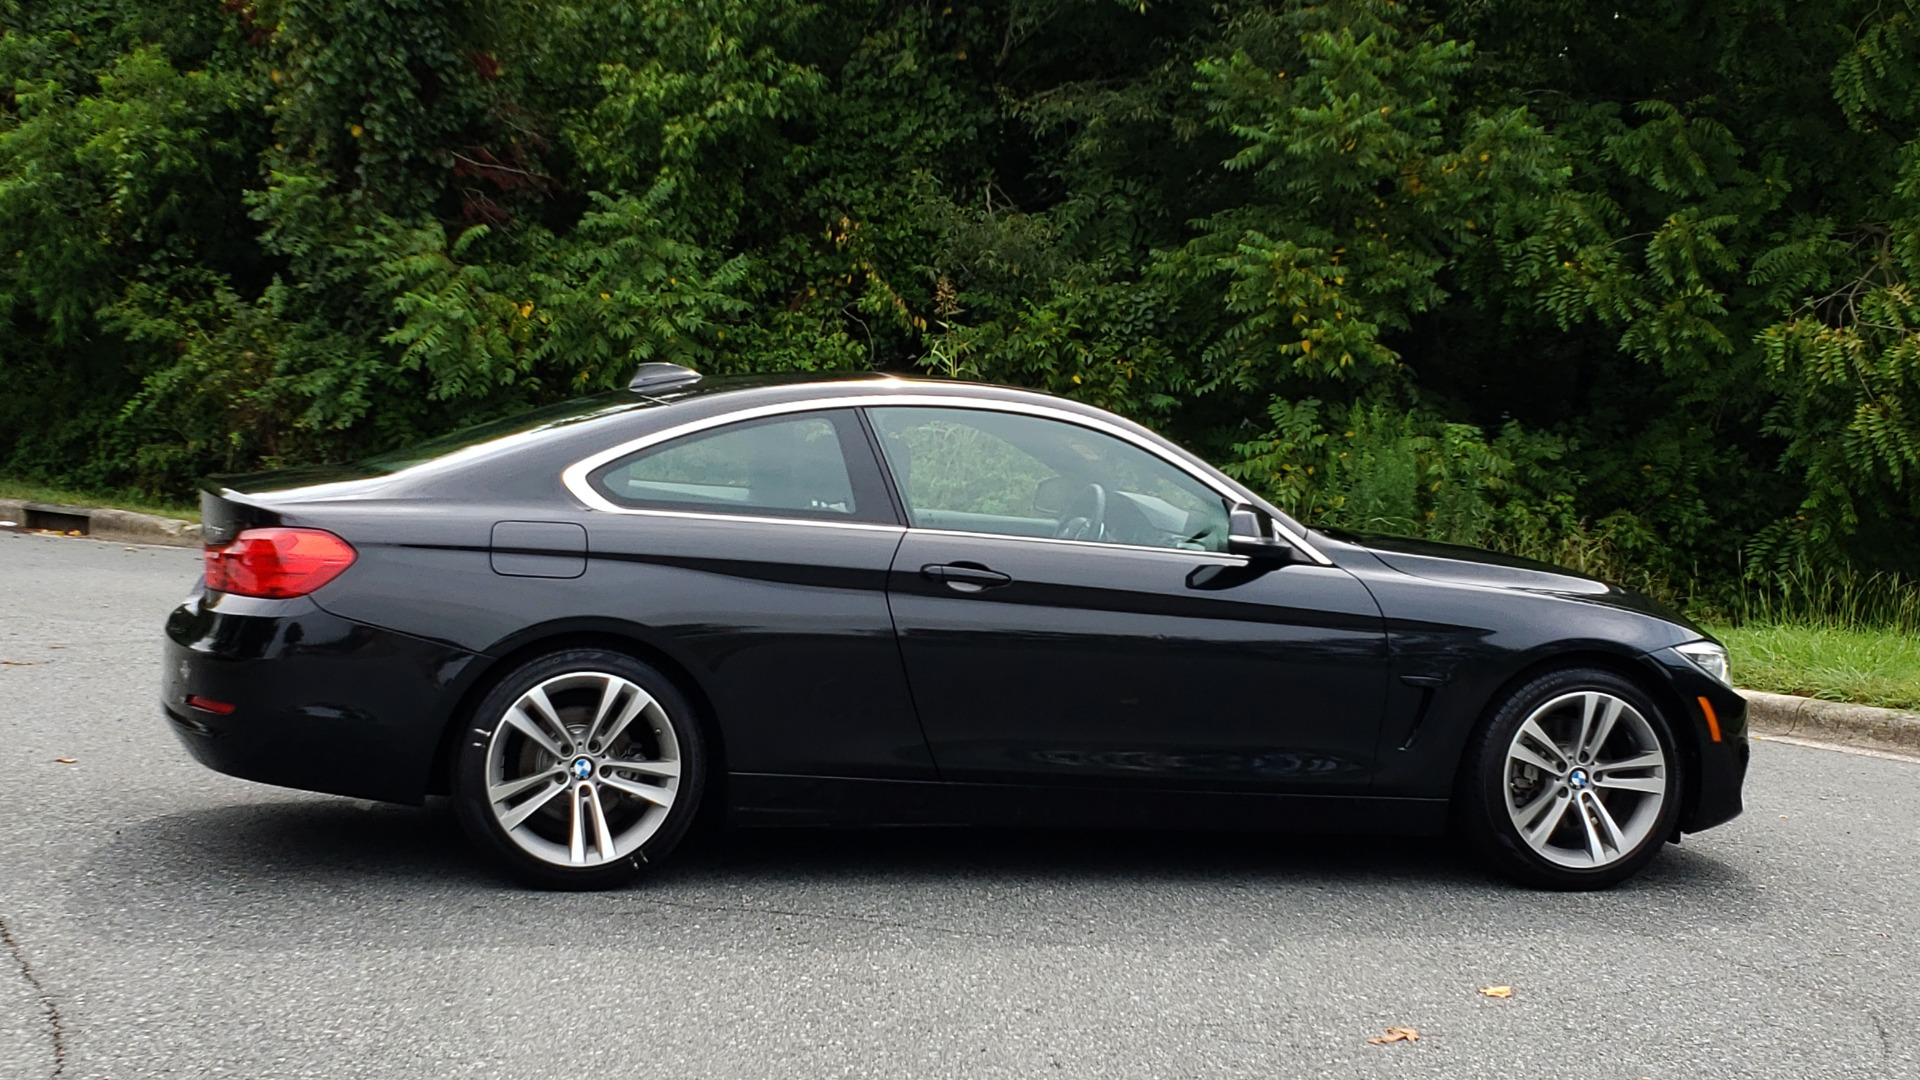 Used 2016 BMW 4 SERIES 428I PREMIUM COUPE / 2.0L / AUTO / NAV / SUNROOF / HEATED SEATS for sale $22,995 at Formula Imports in Charlotte NC 28227 7